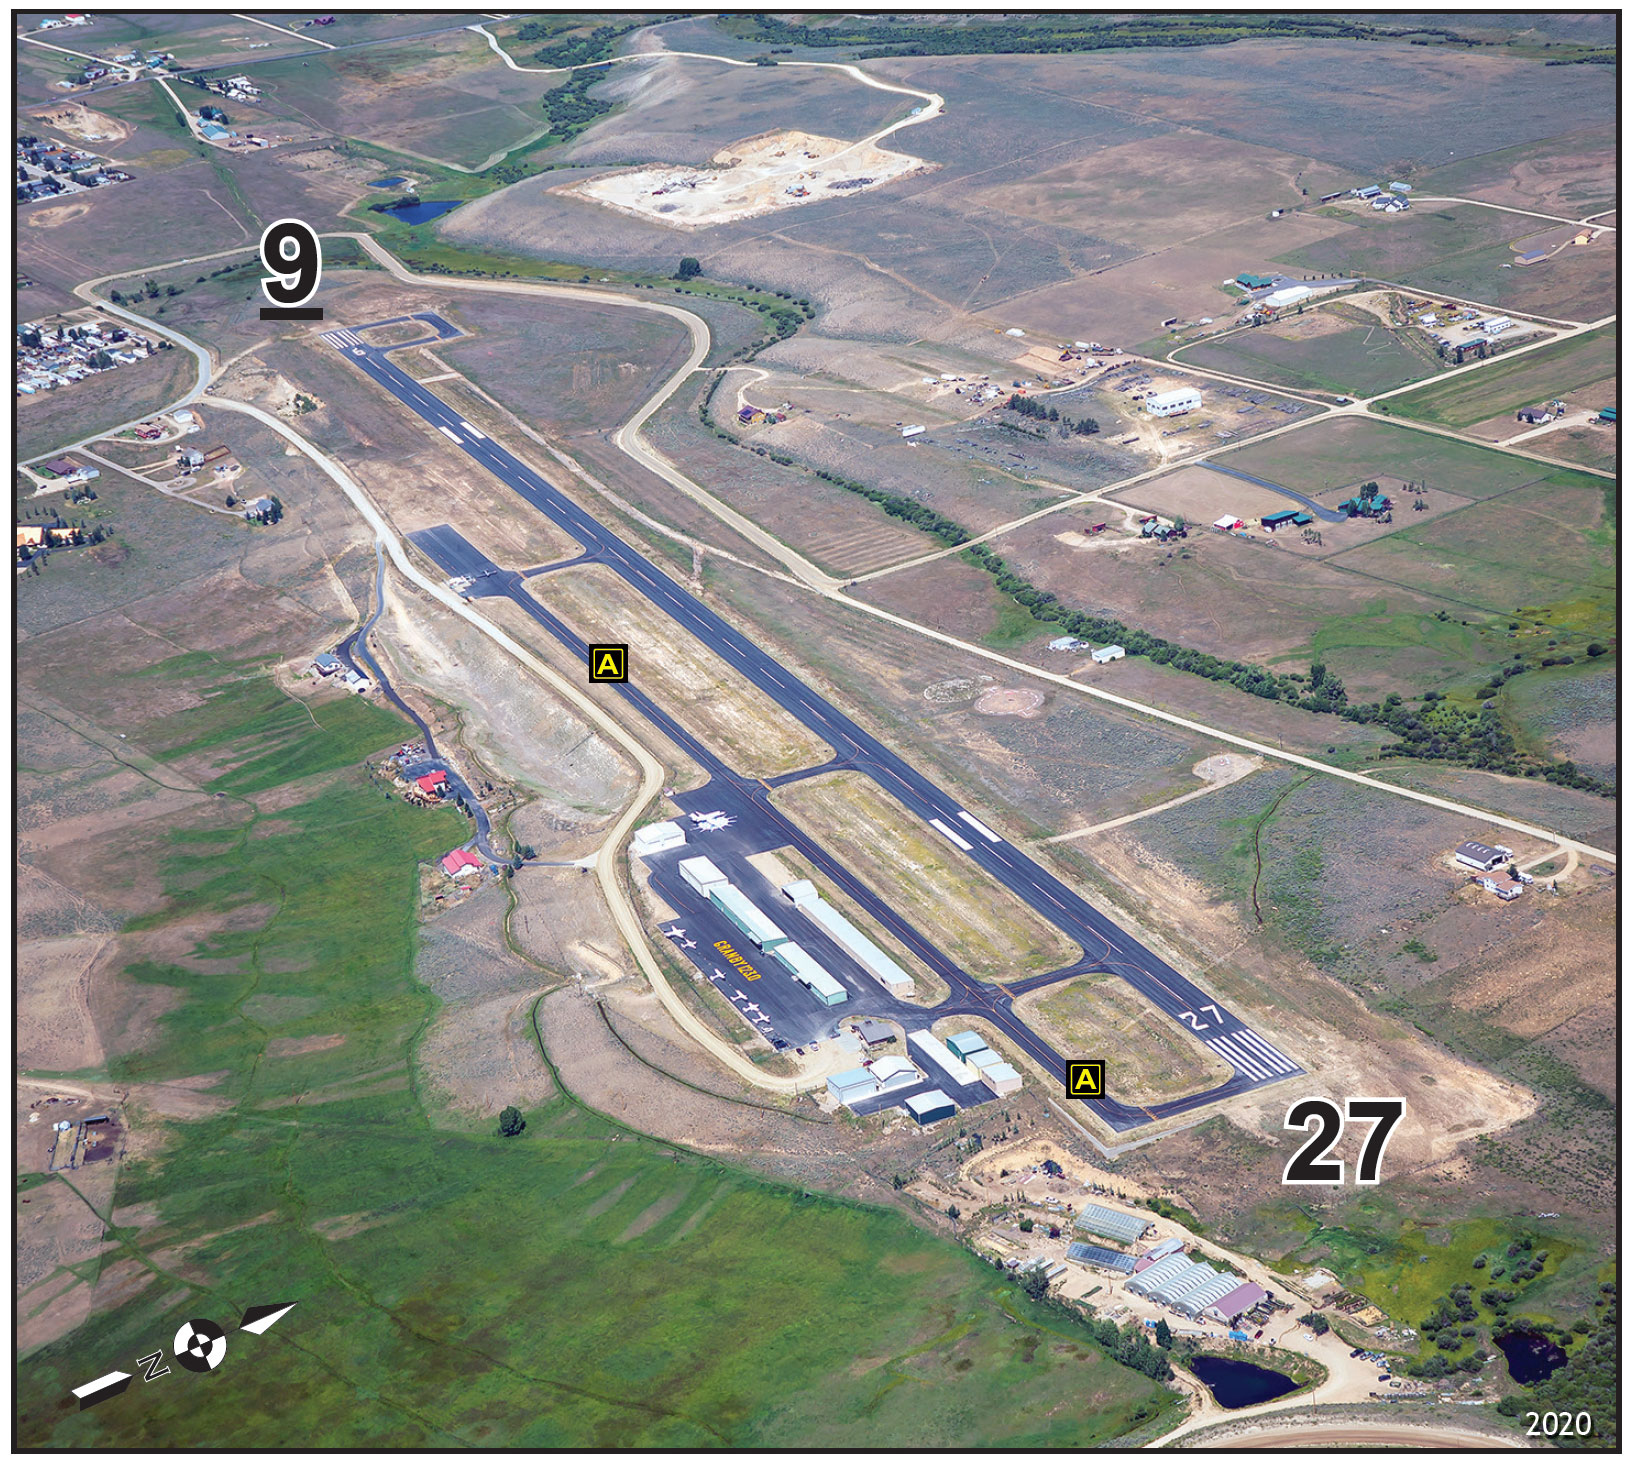 Granby-Grand County Airport